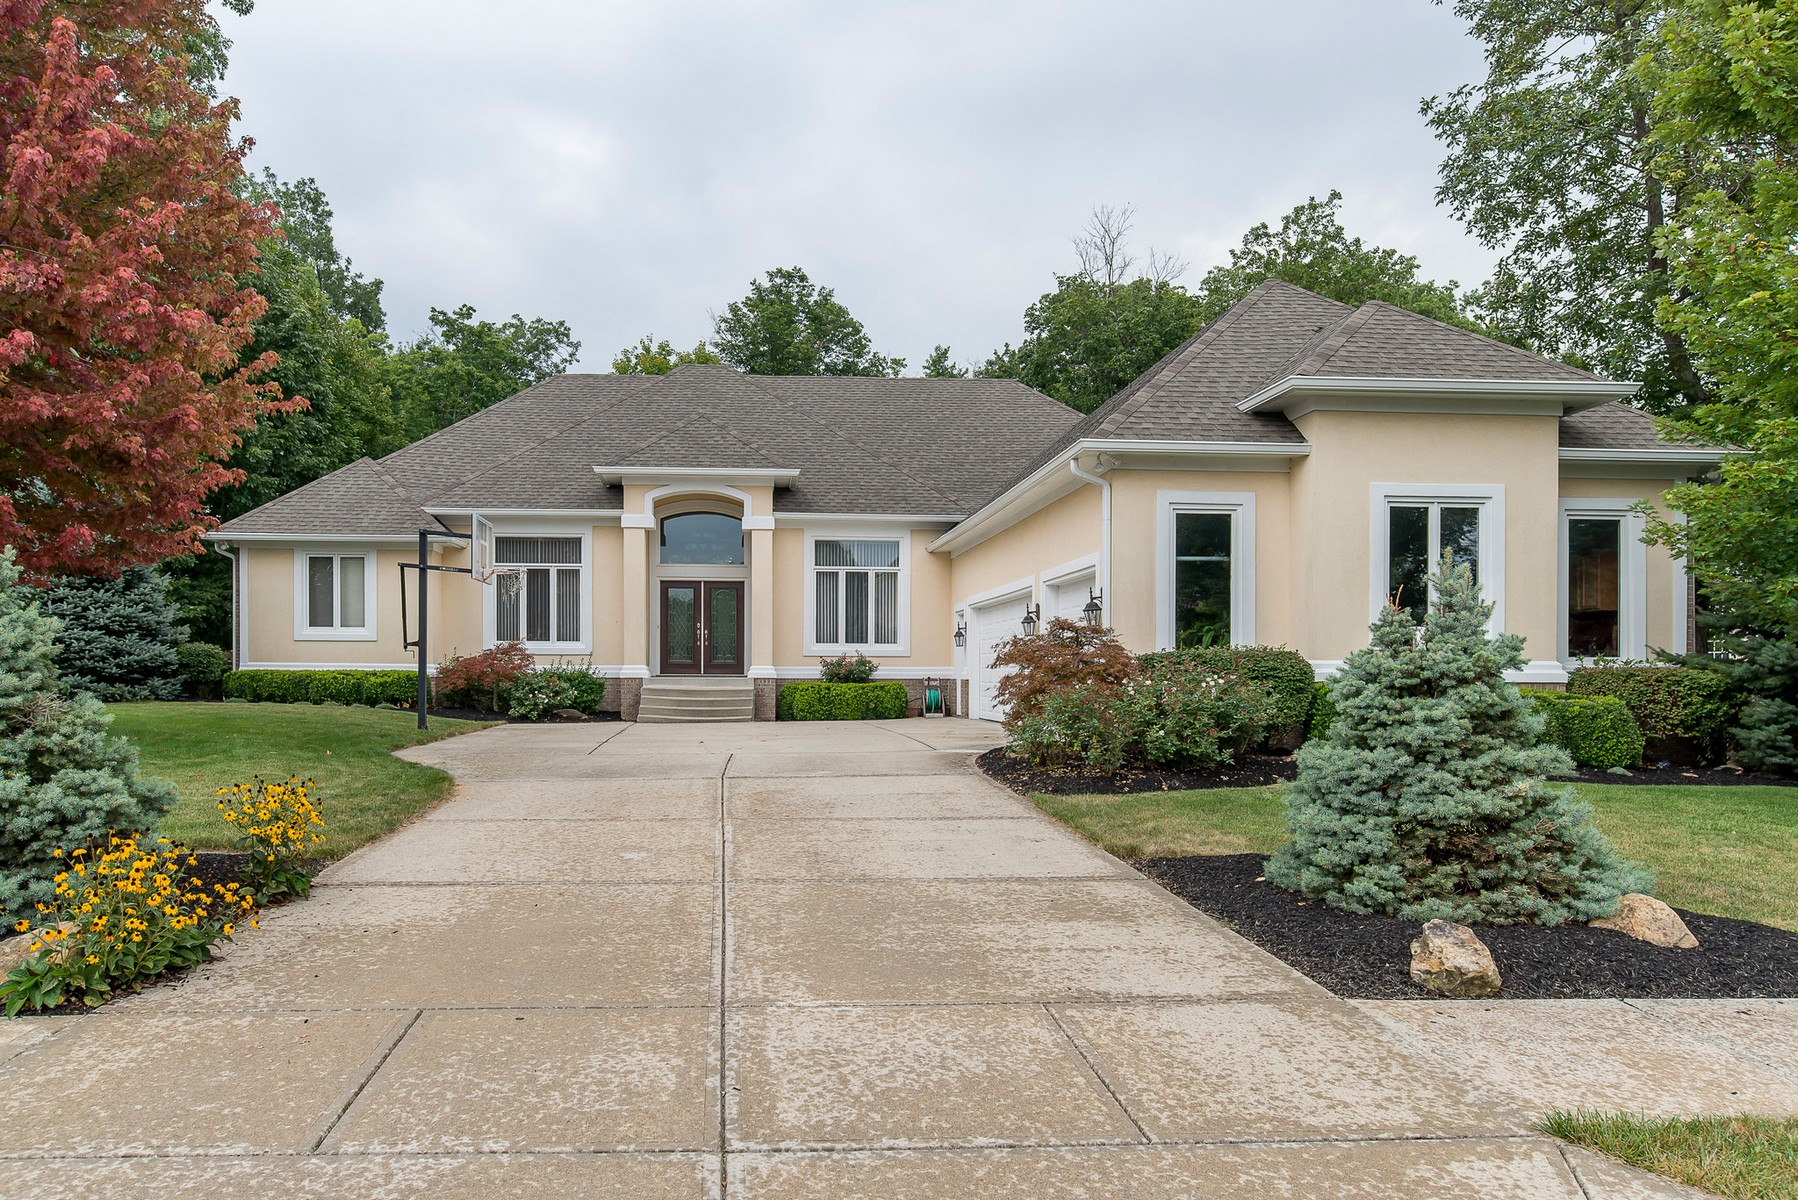 Single Family Home for Sale at Beautiful Geist Home 11110 Ravenna Way Indianapolis, Indiana 46236 United States